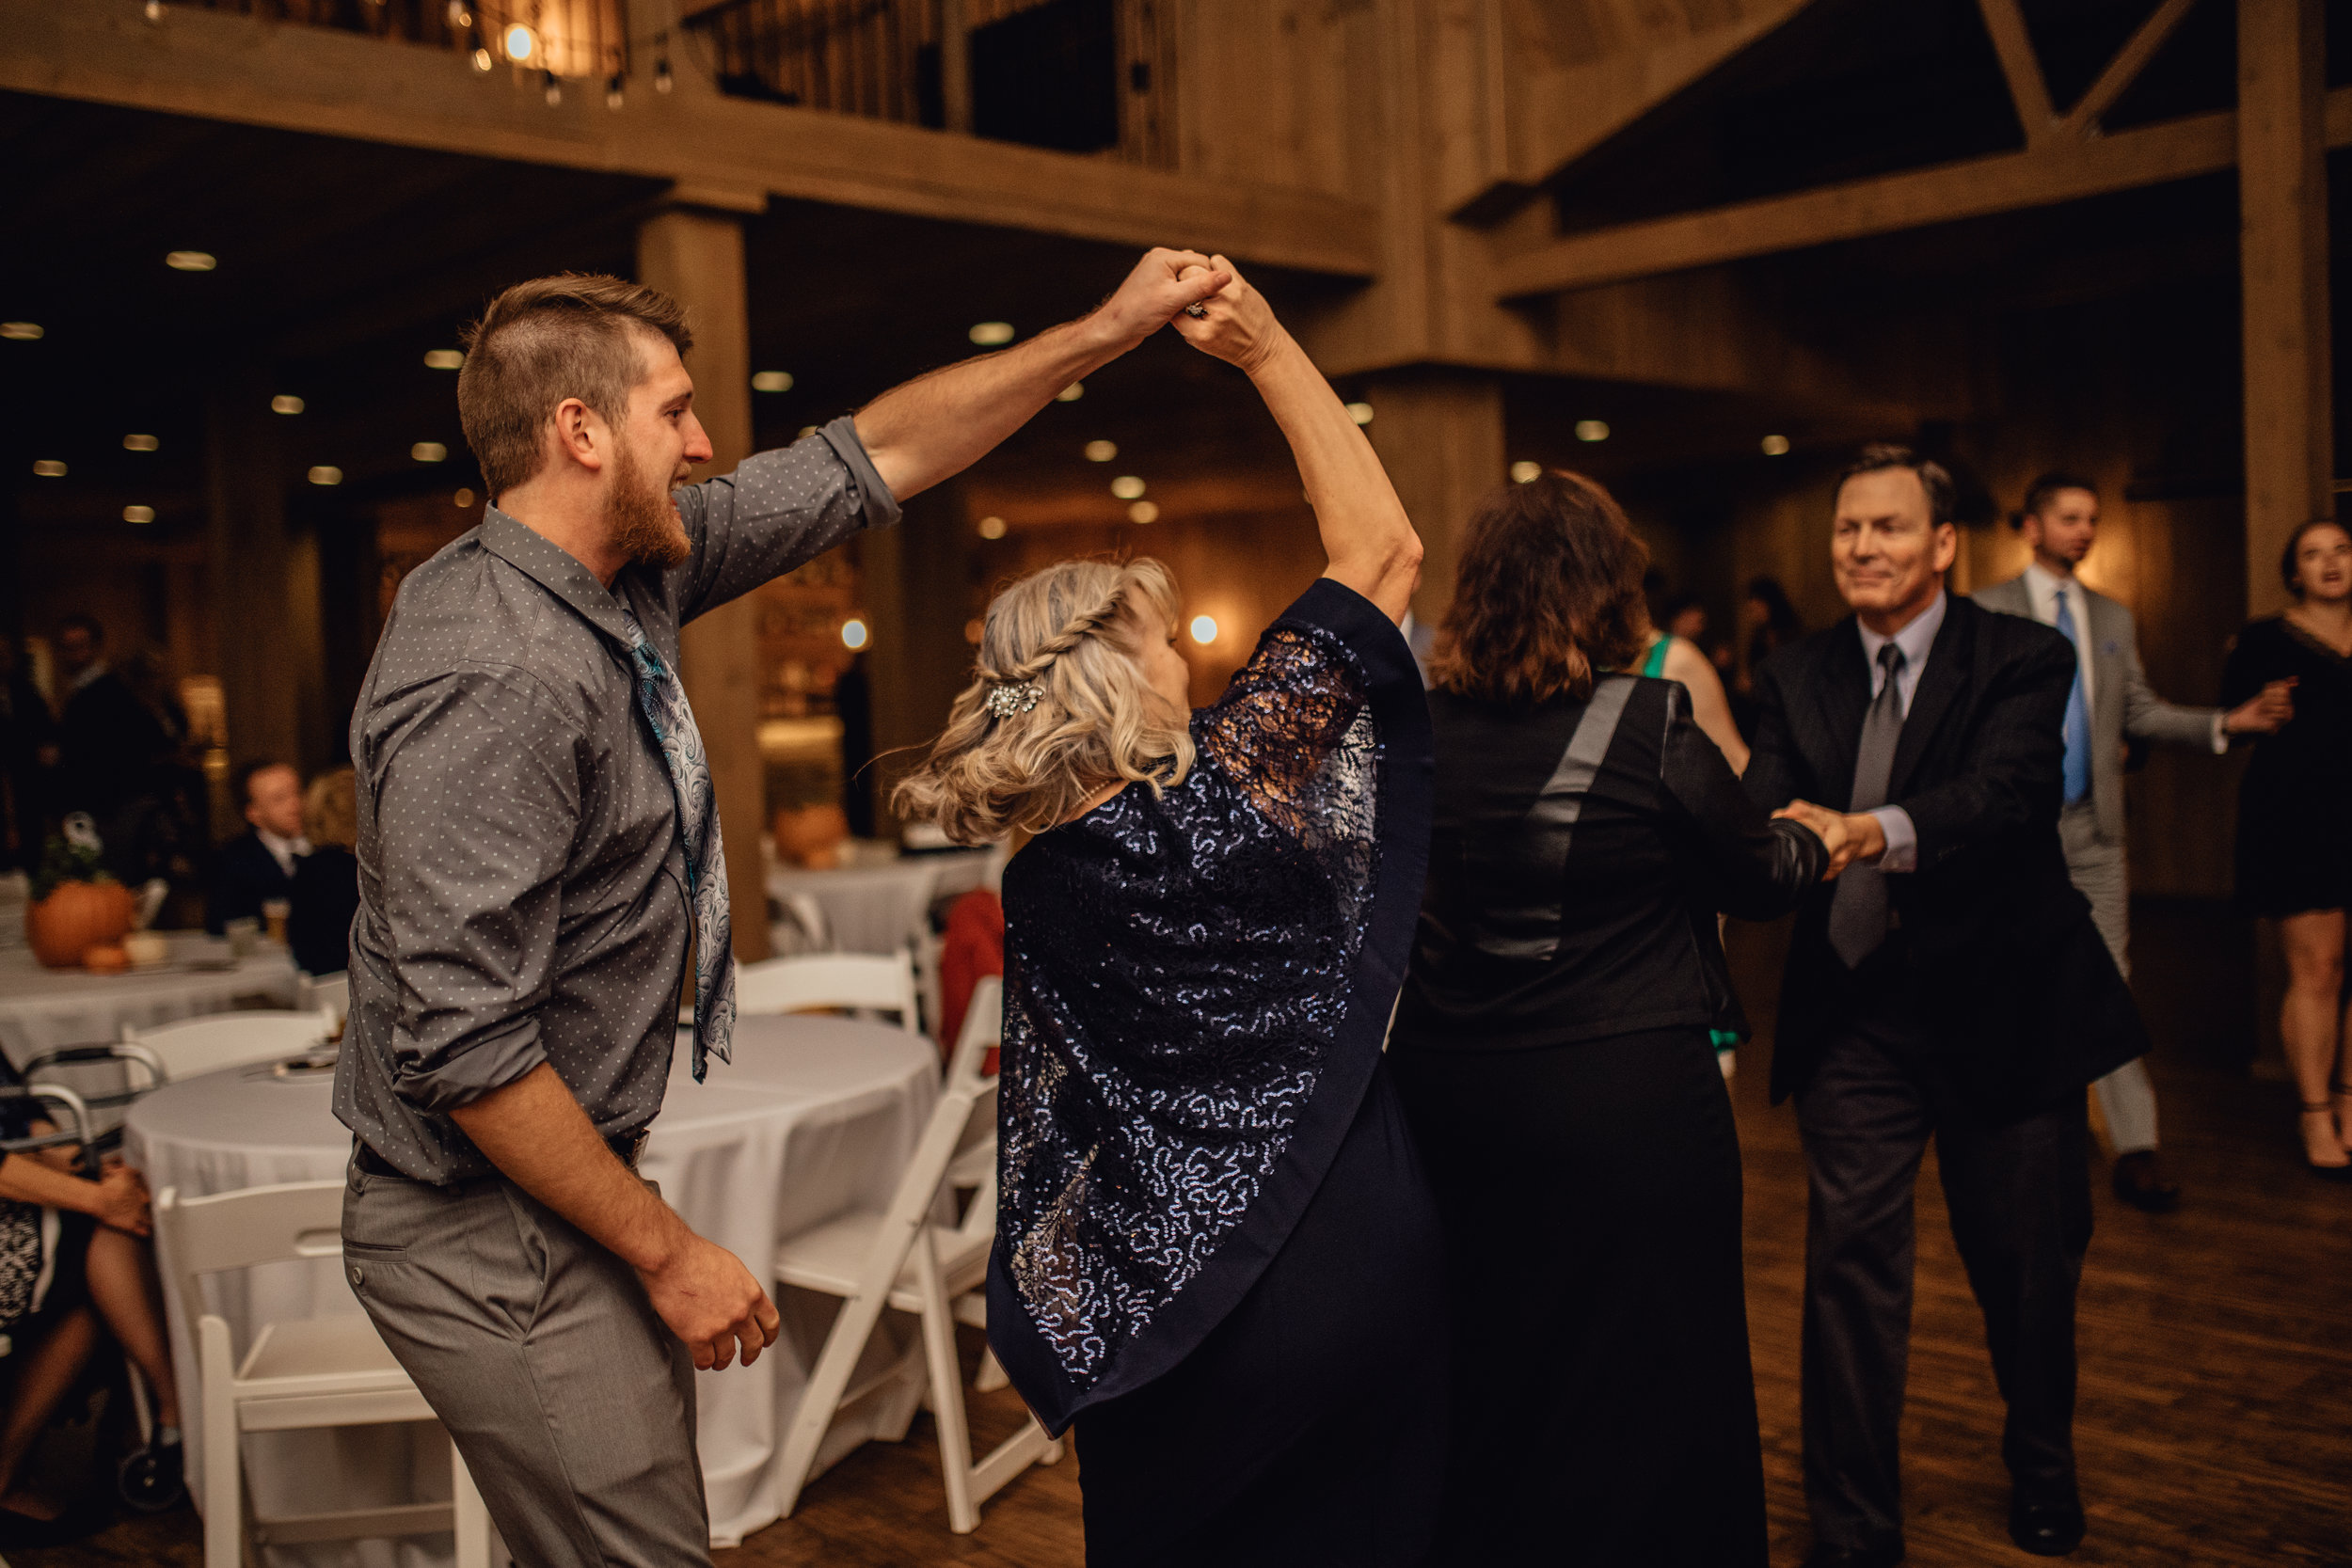 guests-dancing-at-rustic-manor-1848.jpg